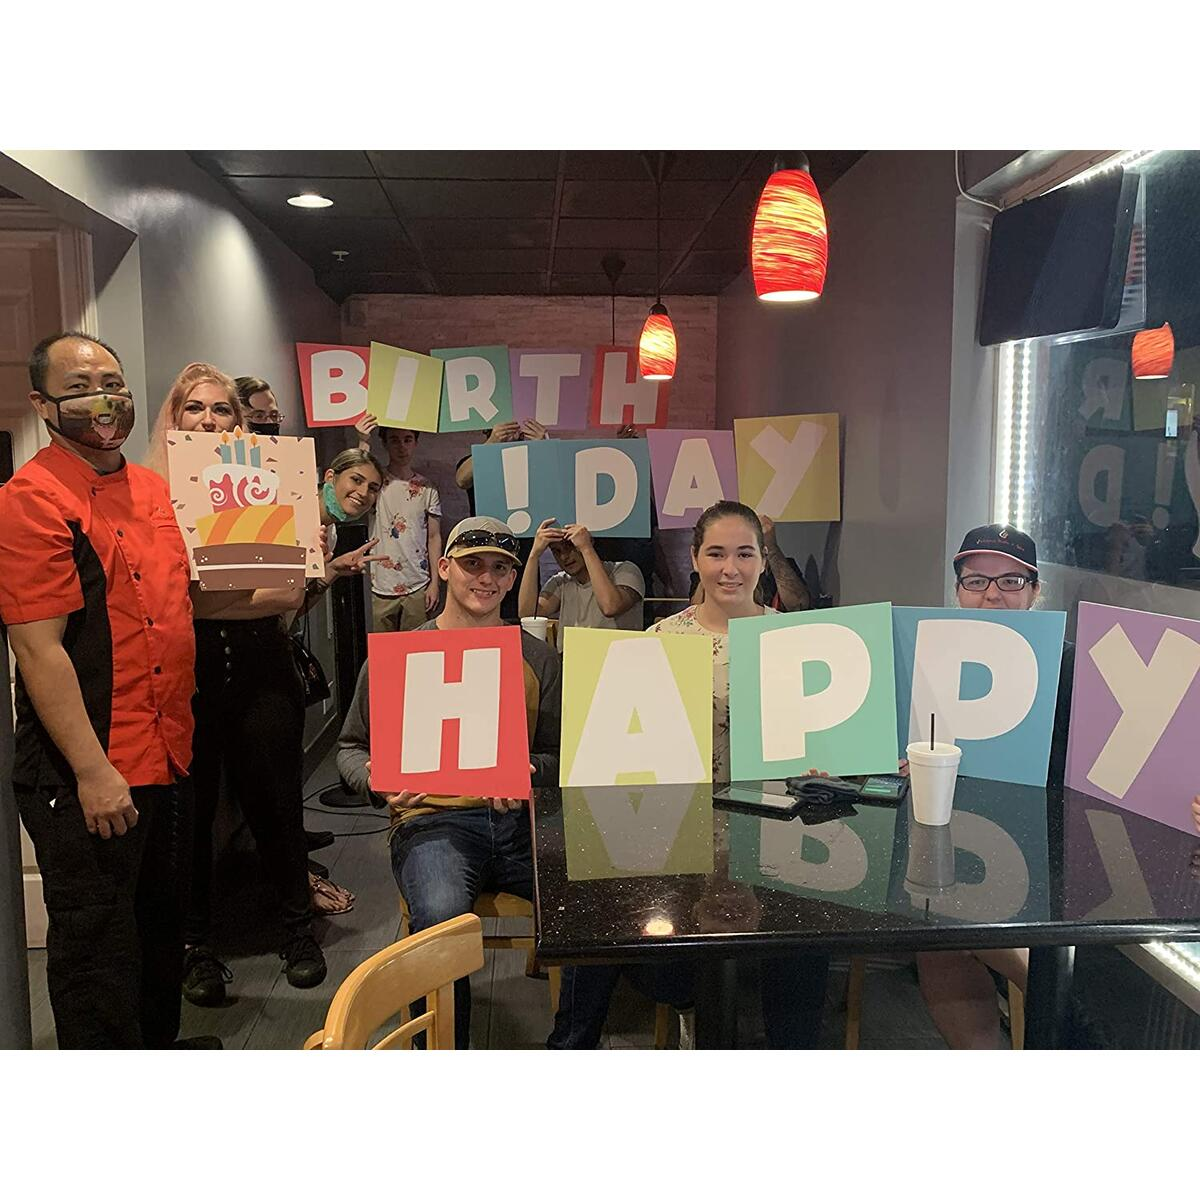 Melgar King Happy Birthday Yard Sign - Outdoor Party Decoration for Your Lawn | Weather Resistant 15 inch Letters with H - Stakes - 15pc Set | Includes Cake | Great for Kids and Adults